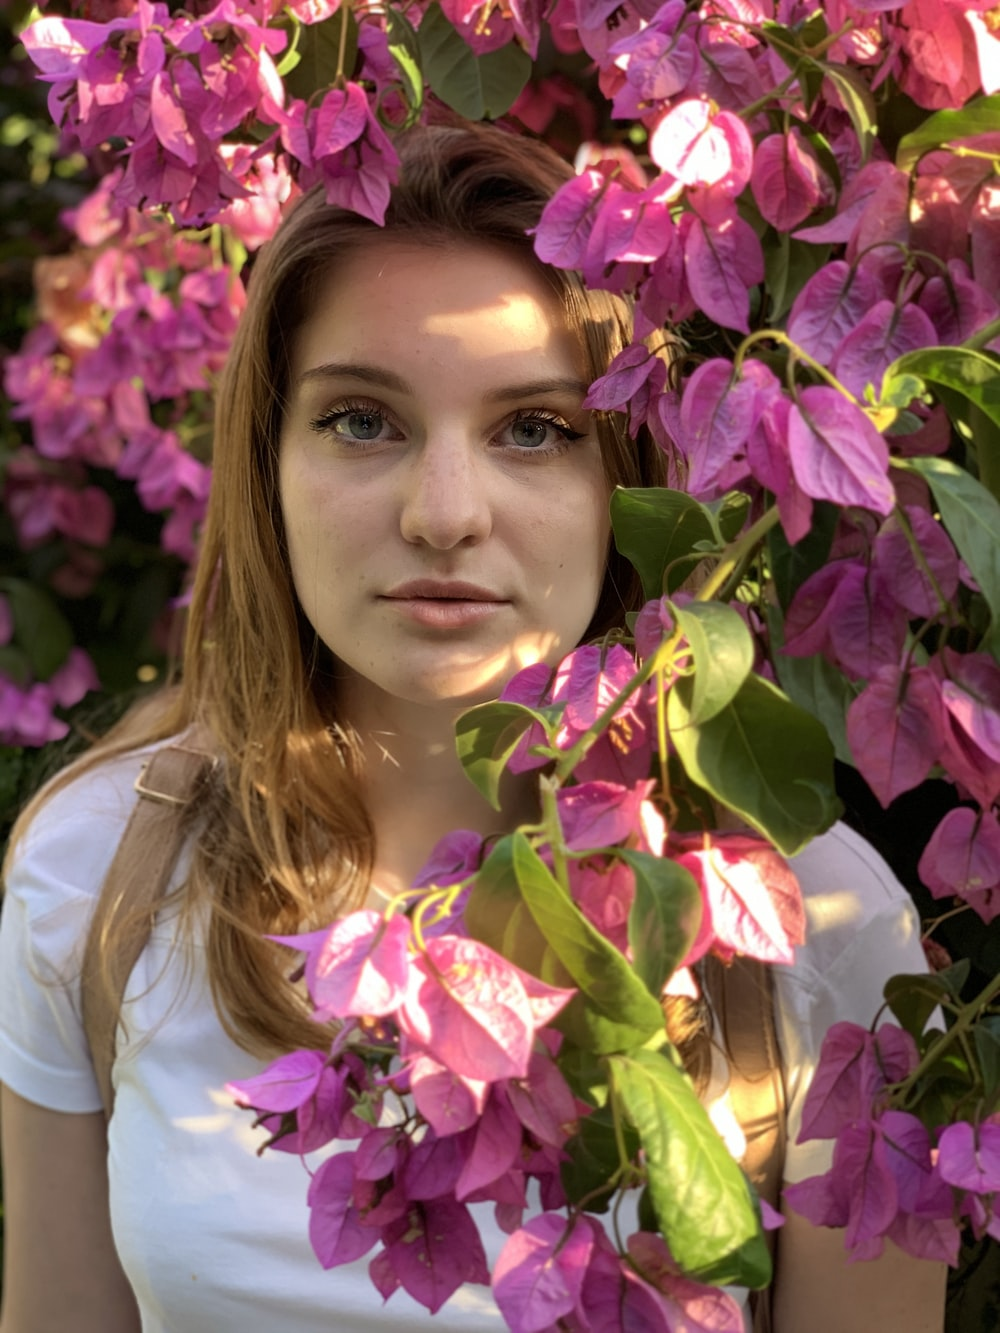 woman in white shirt standing beside pink flowers